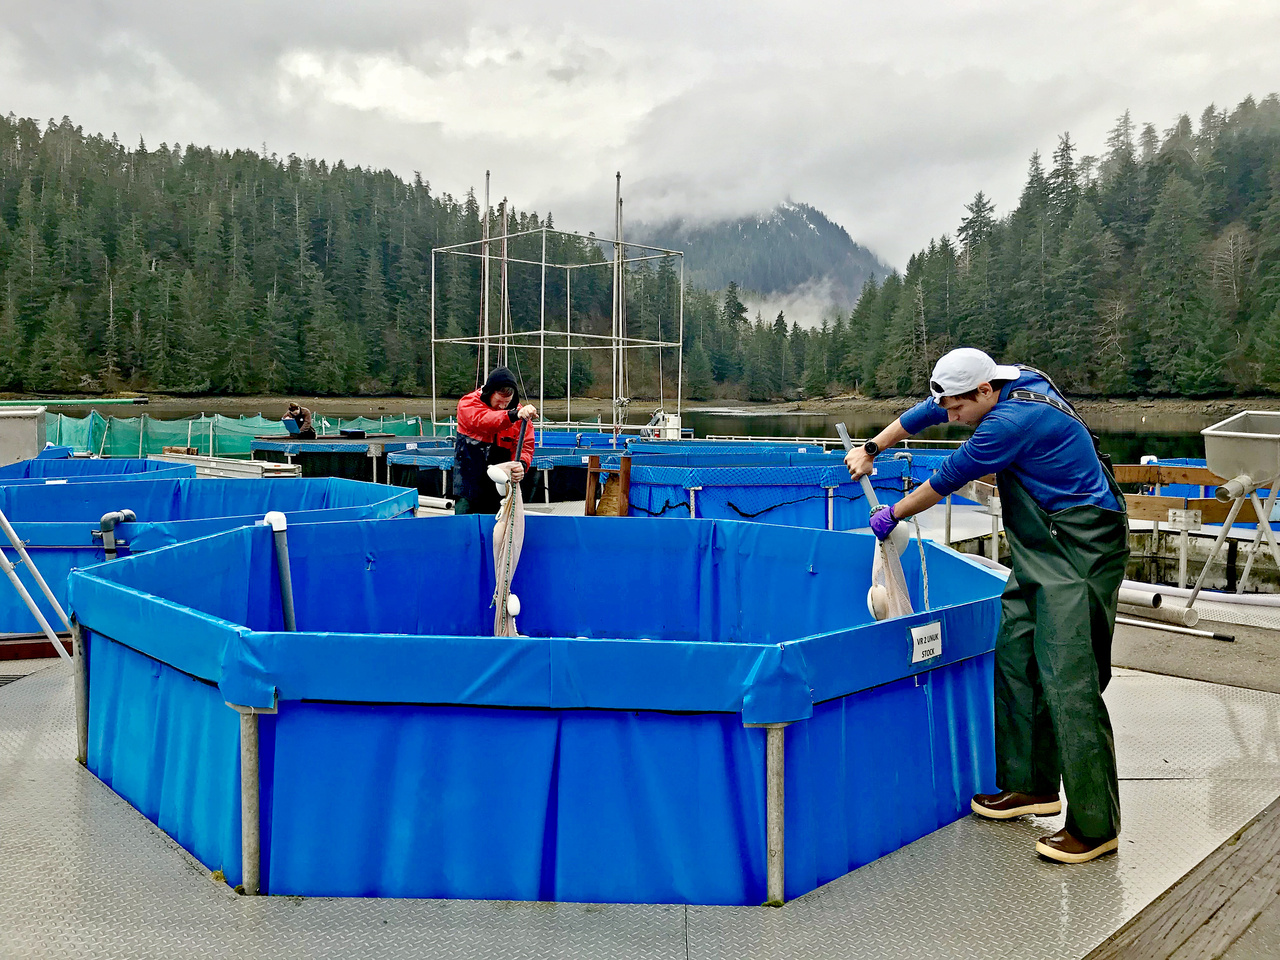 Gerard Foley (left) and Charlie Waters (right) seining juvenile Chinook salmon in a vertical raceway. Photo credit: Katlyn Fuent